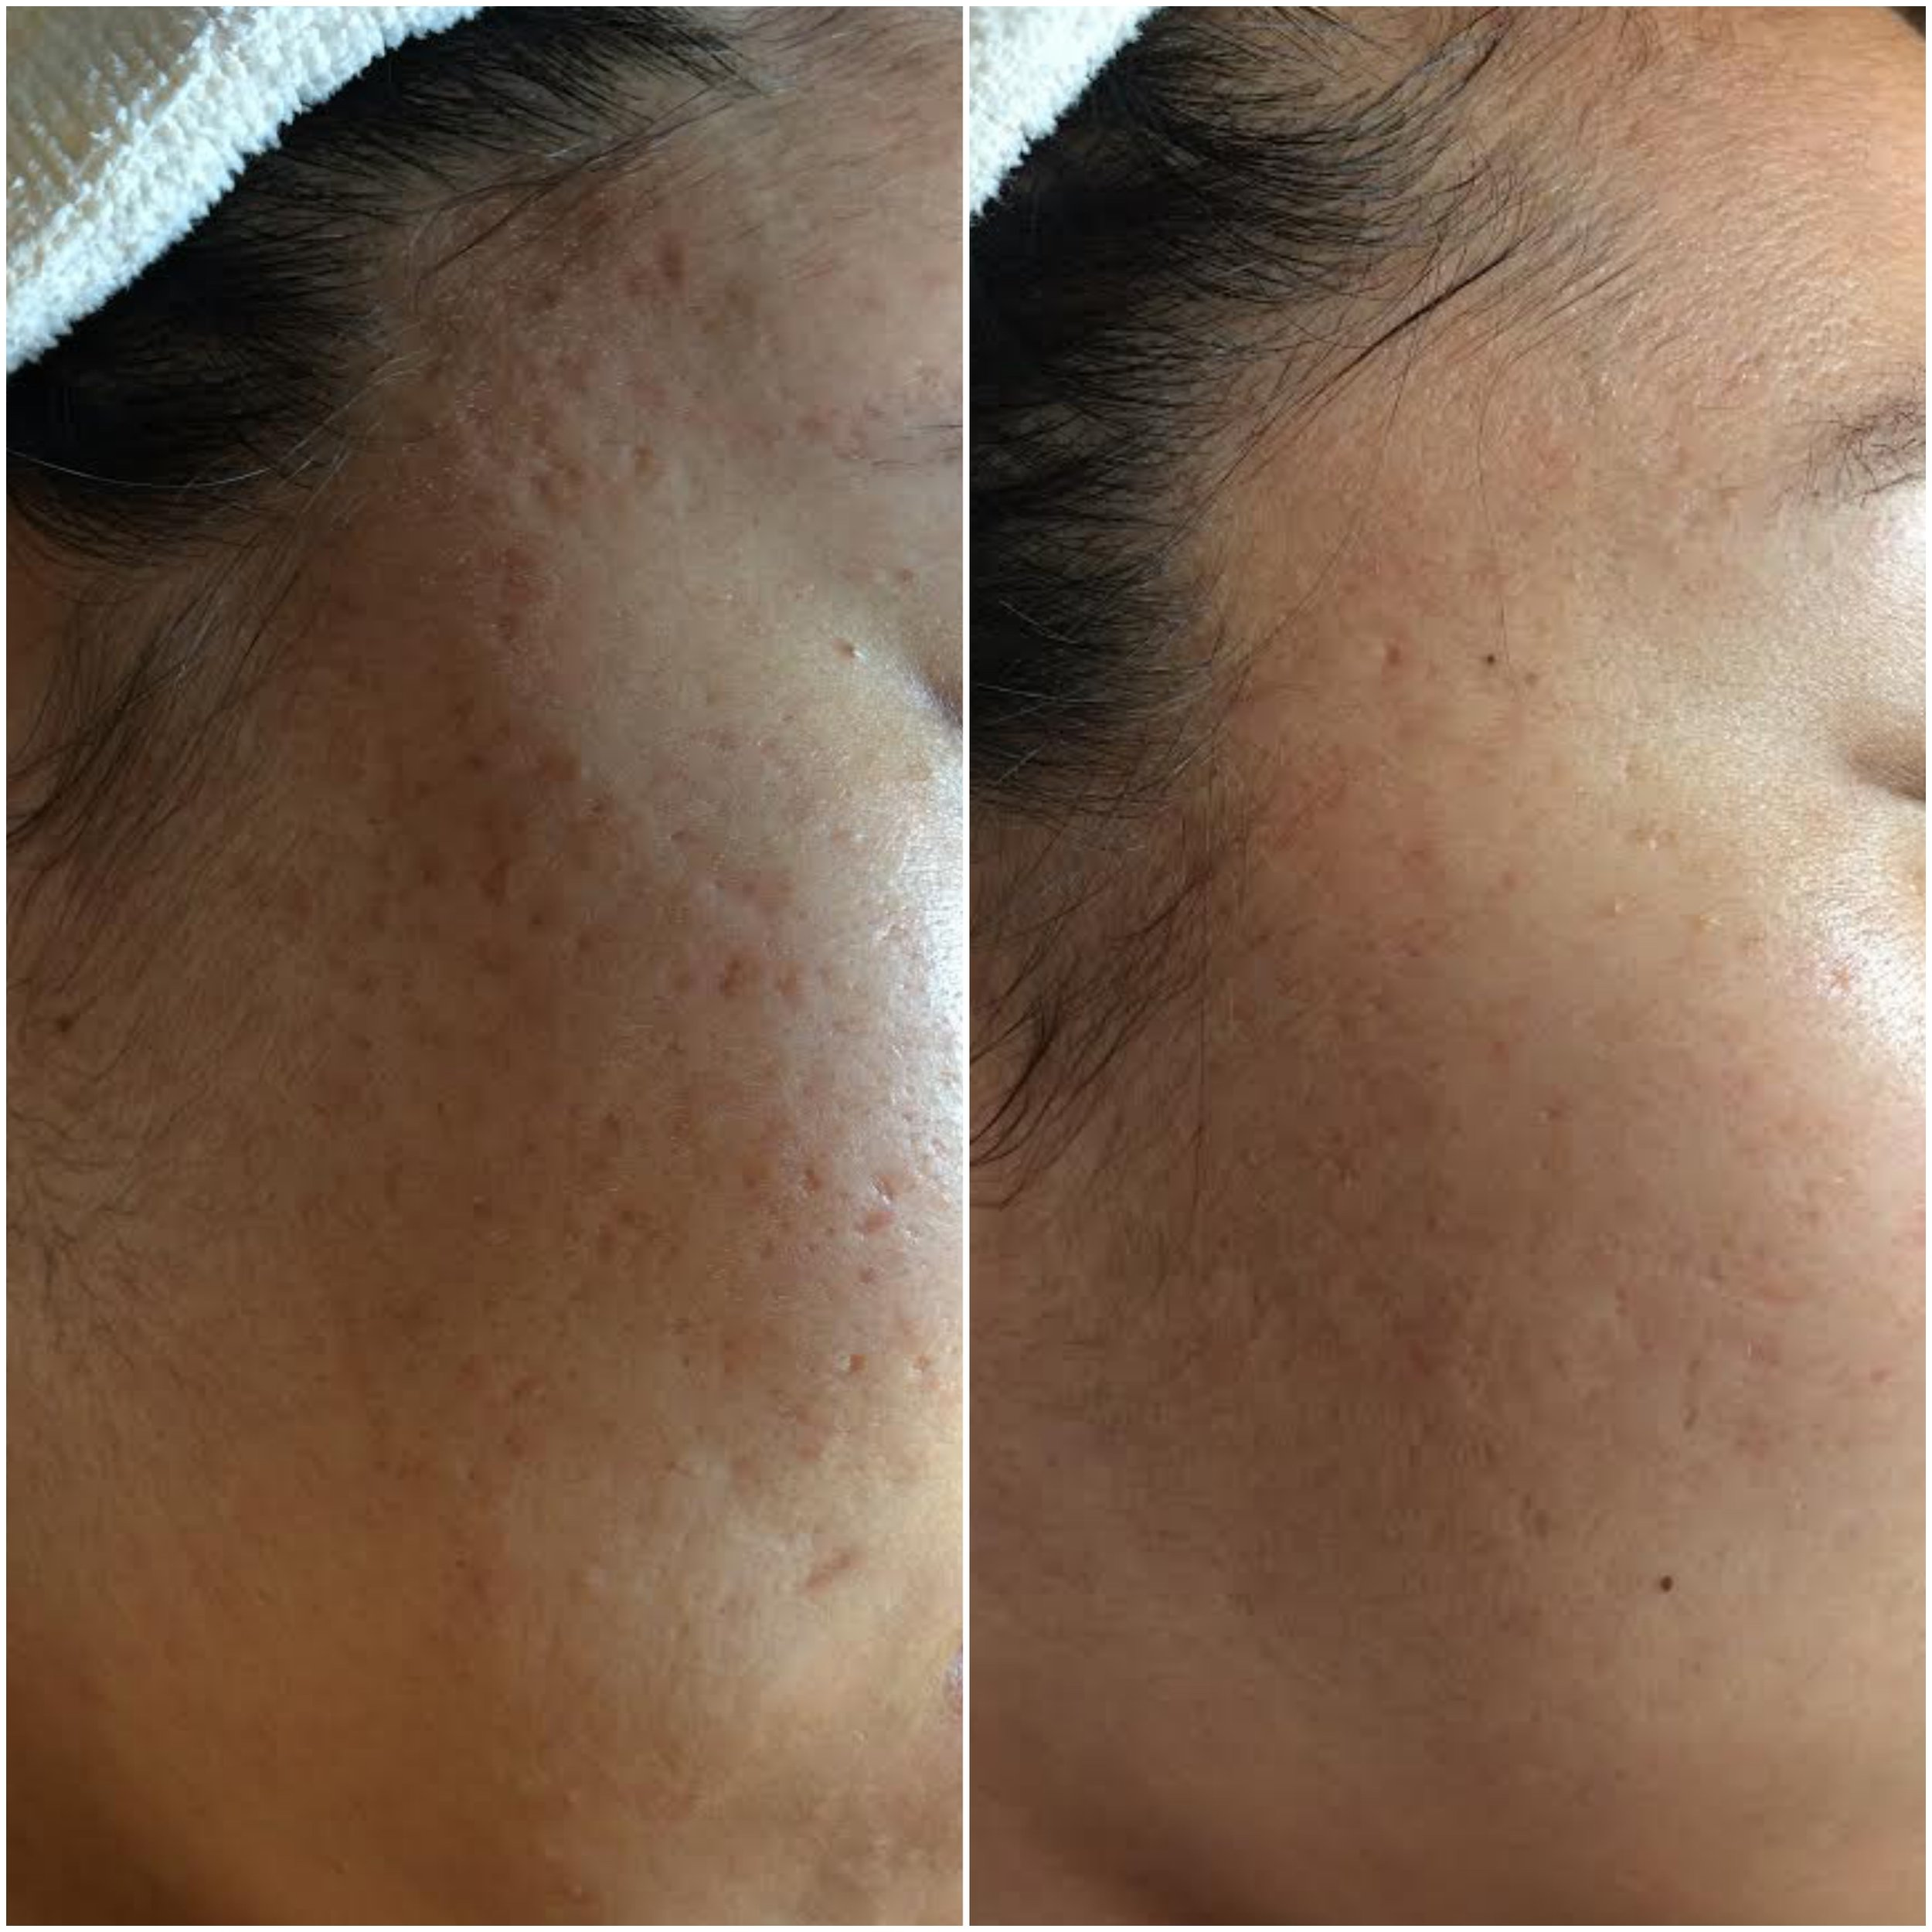 Acne pit scarring filled using human stem cell microneedling series